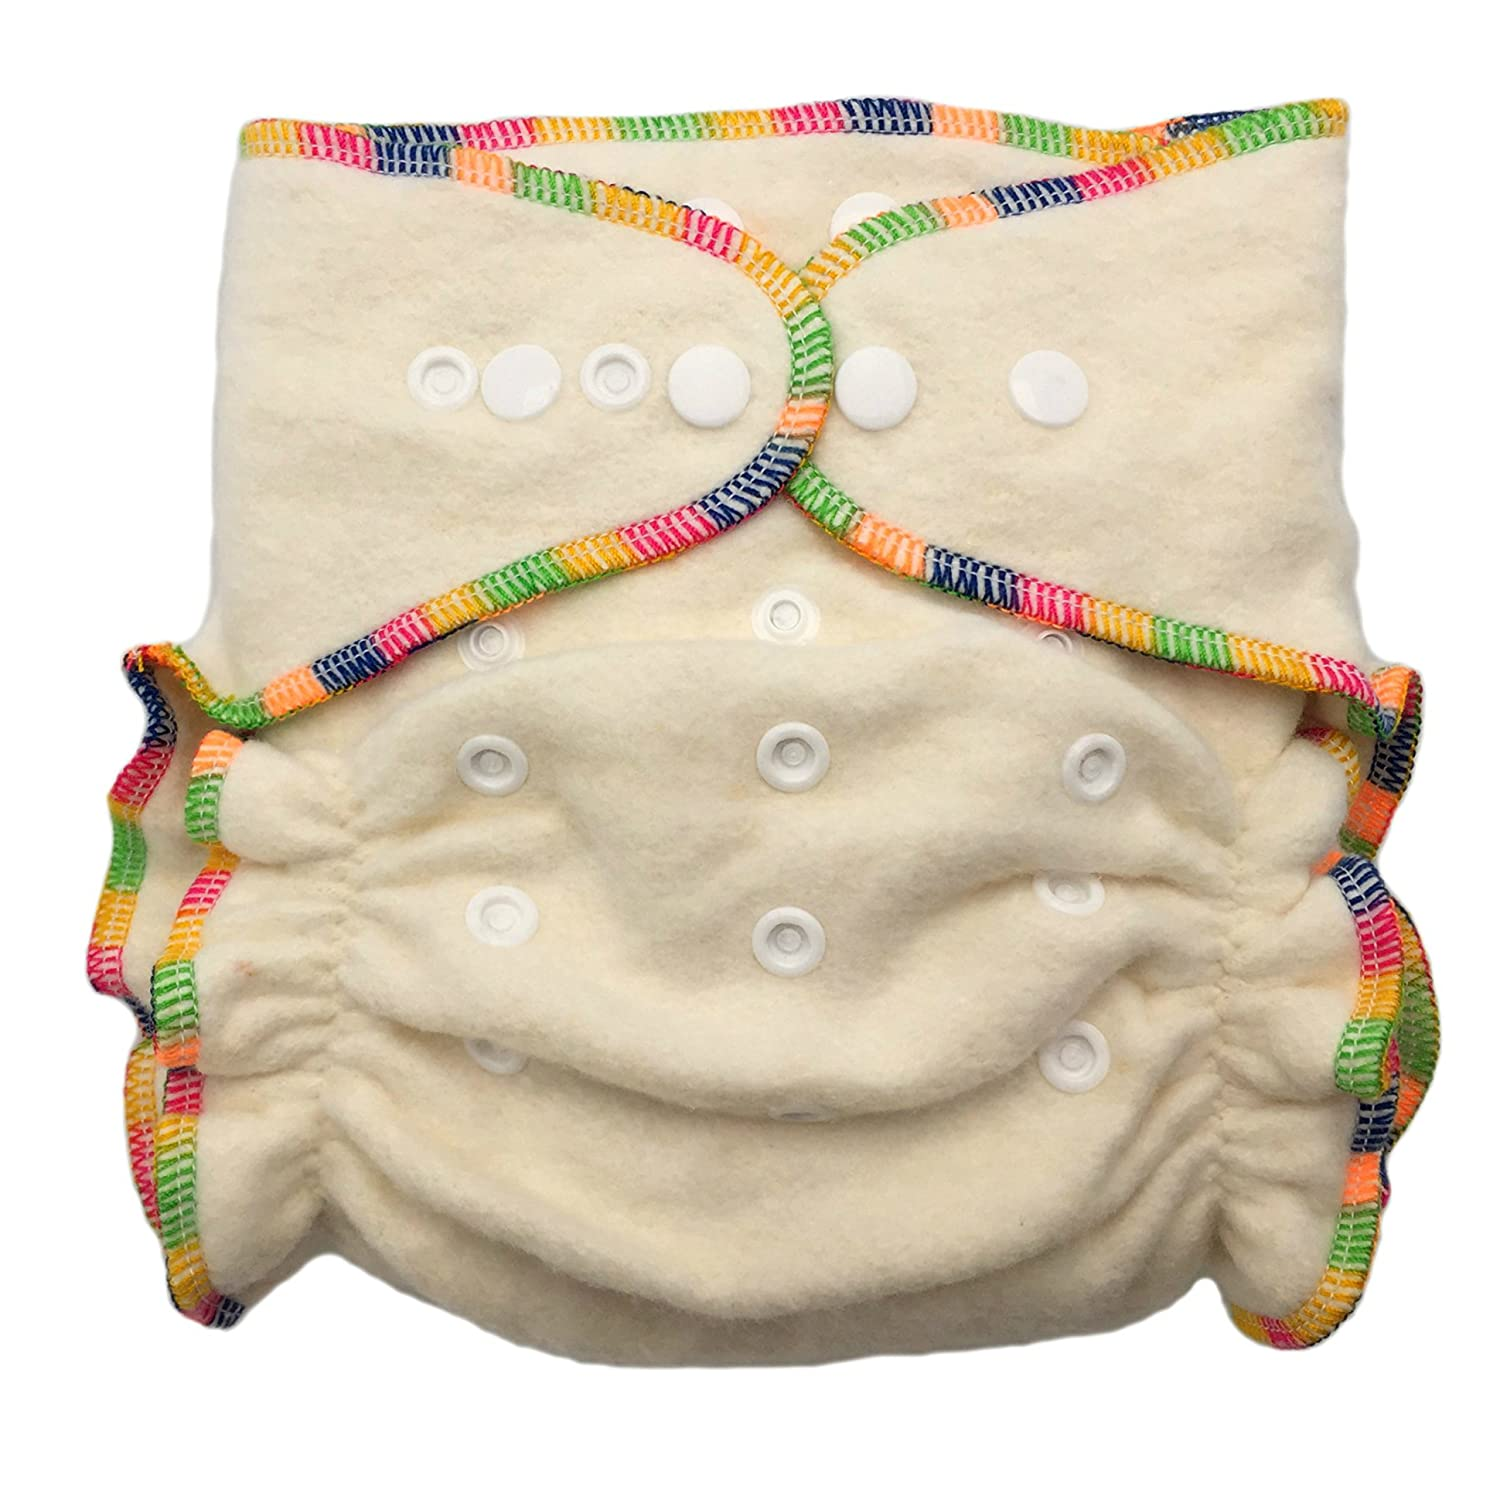 THX Organic Hemp Fitted Cloth Diaper with TWO Inserts; One Size Fits 7-30lbs, Very Absorbent